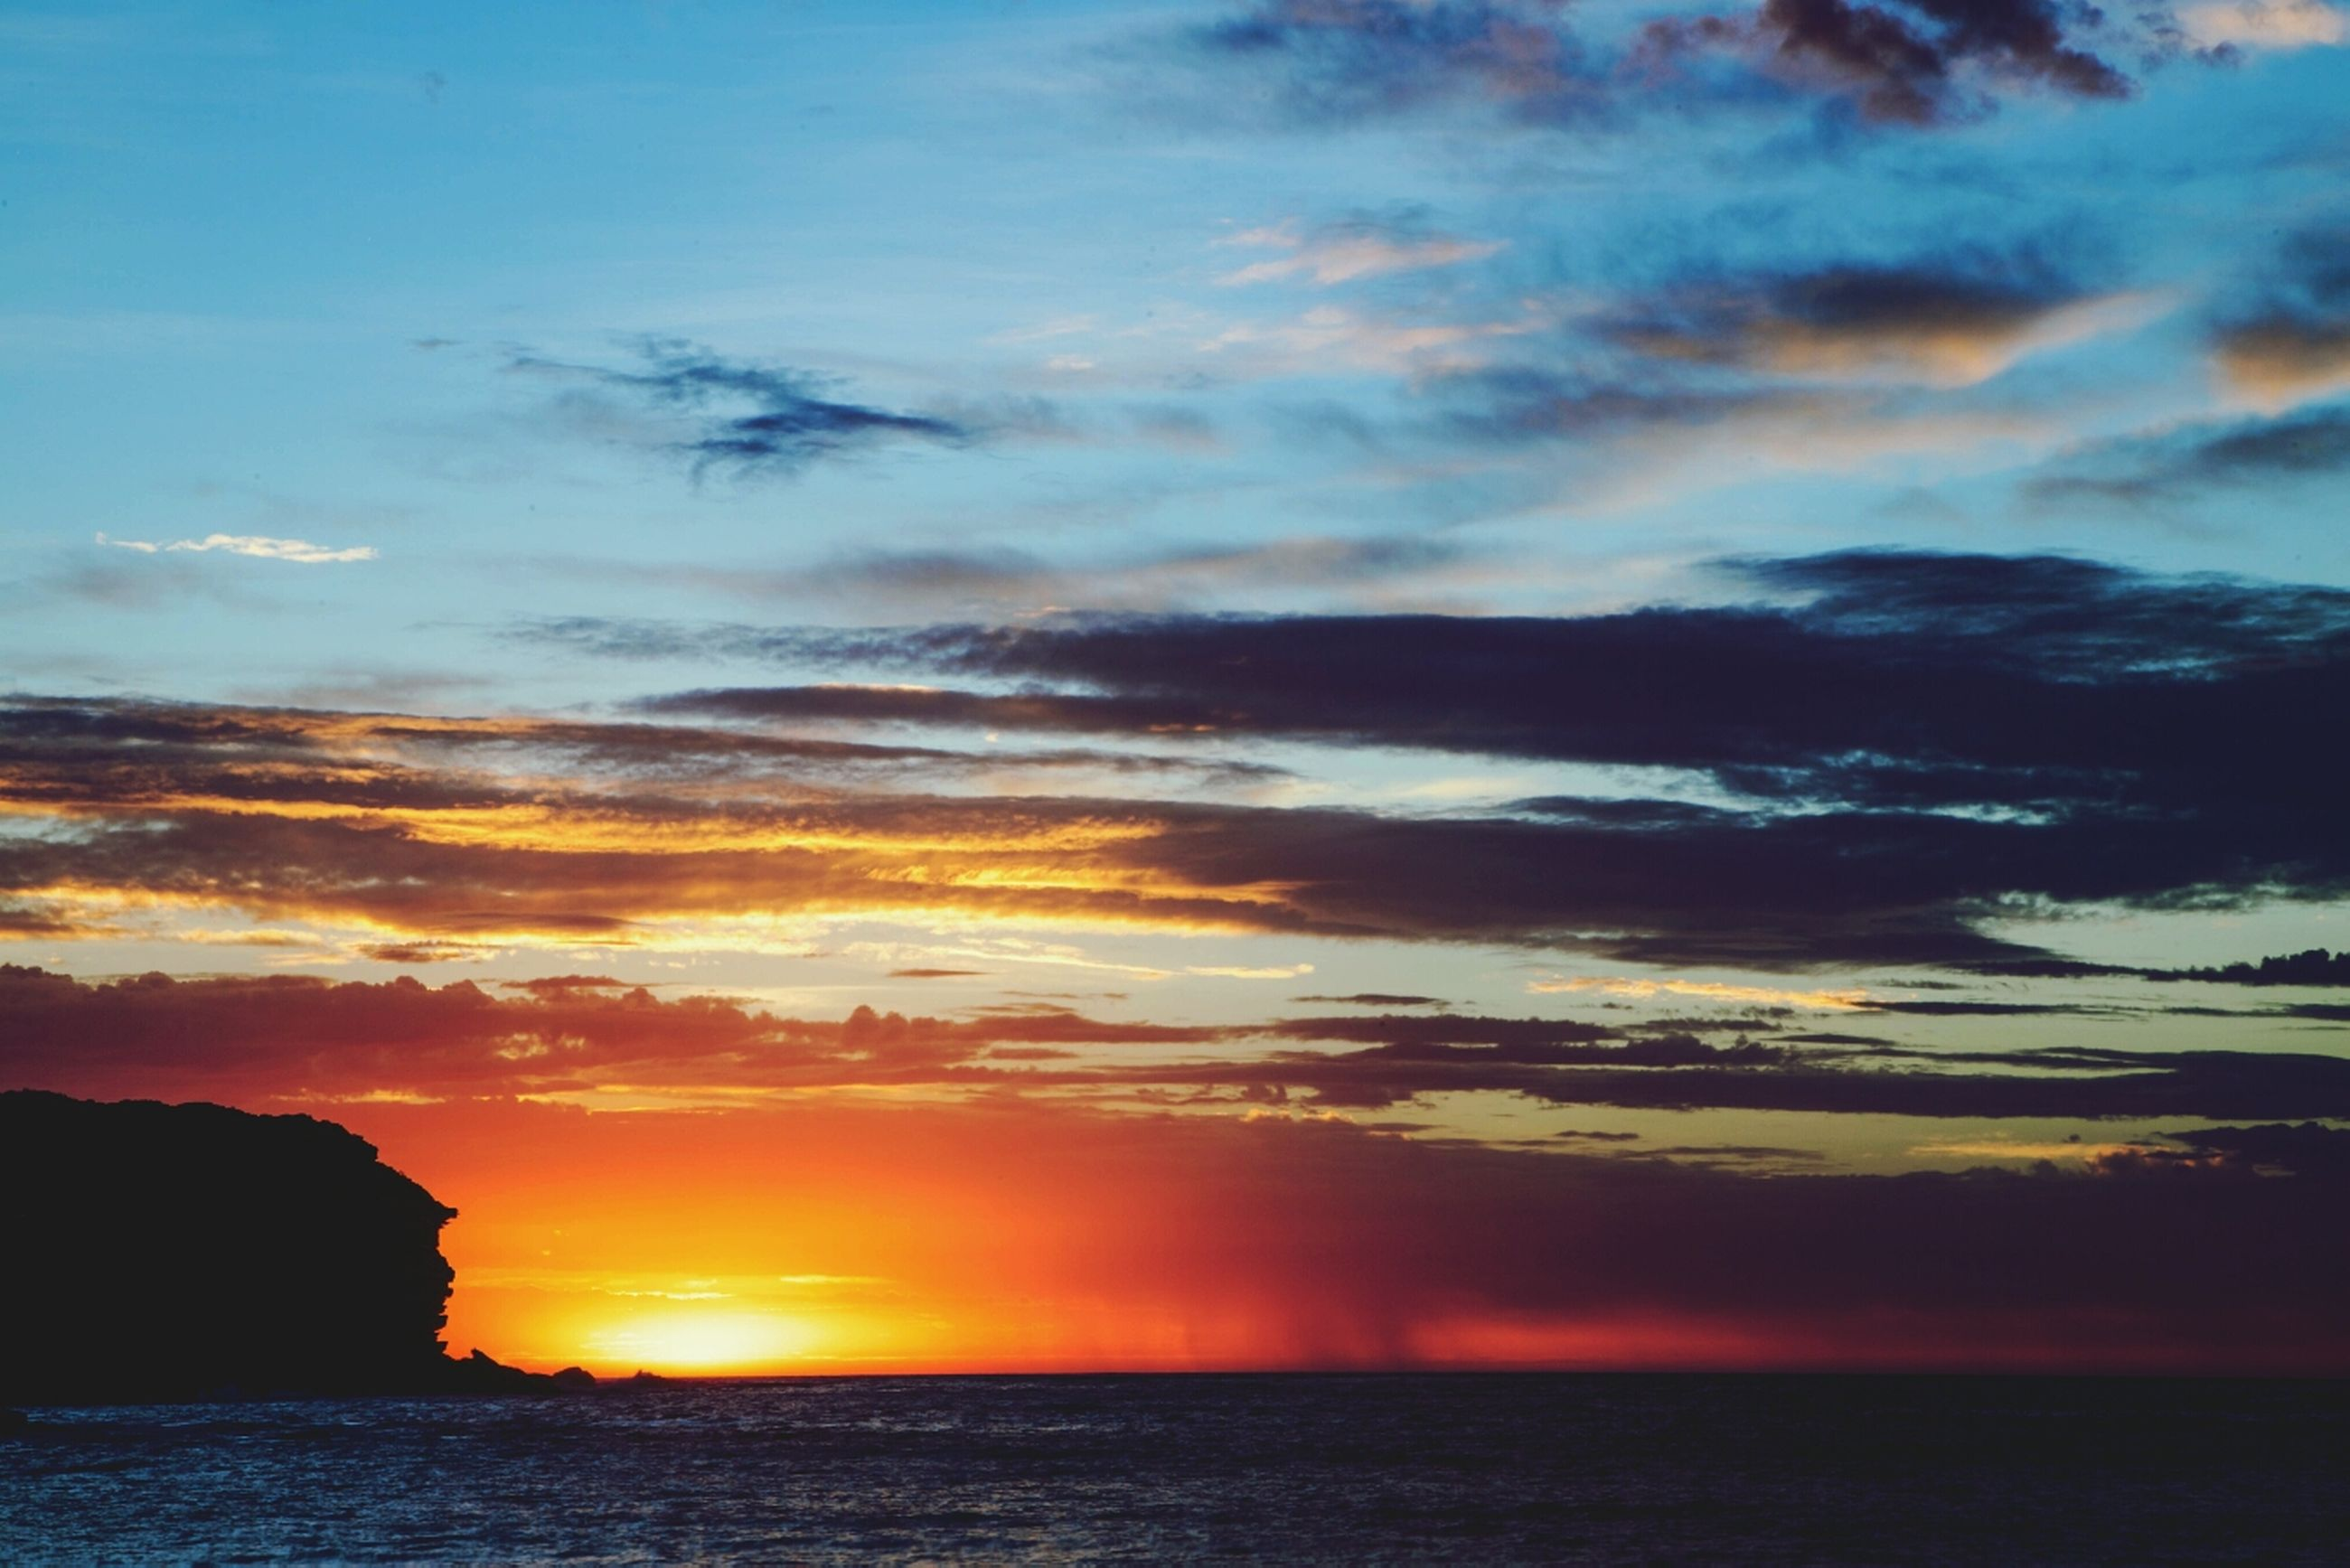 sunset, water, sea, scenics, tranquil scene, sky, beauty in nature, orange color, tranquility, waterfront, horizon over water, idyllic, sun, nature, silhouette, cloud - sky, cloud, reflection, dramatic sky, outdoors